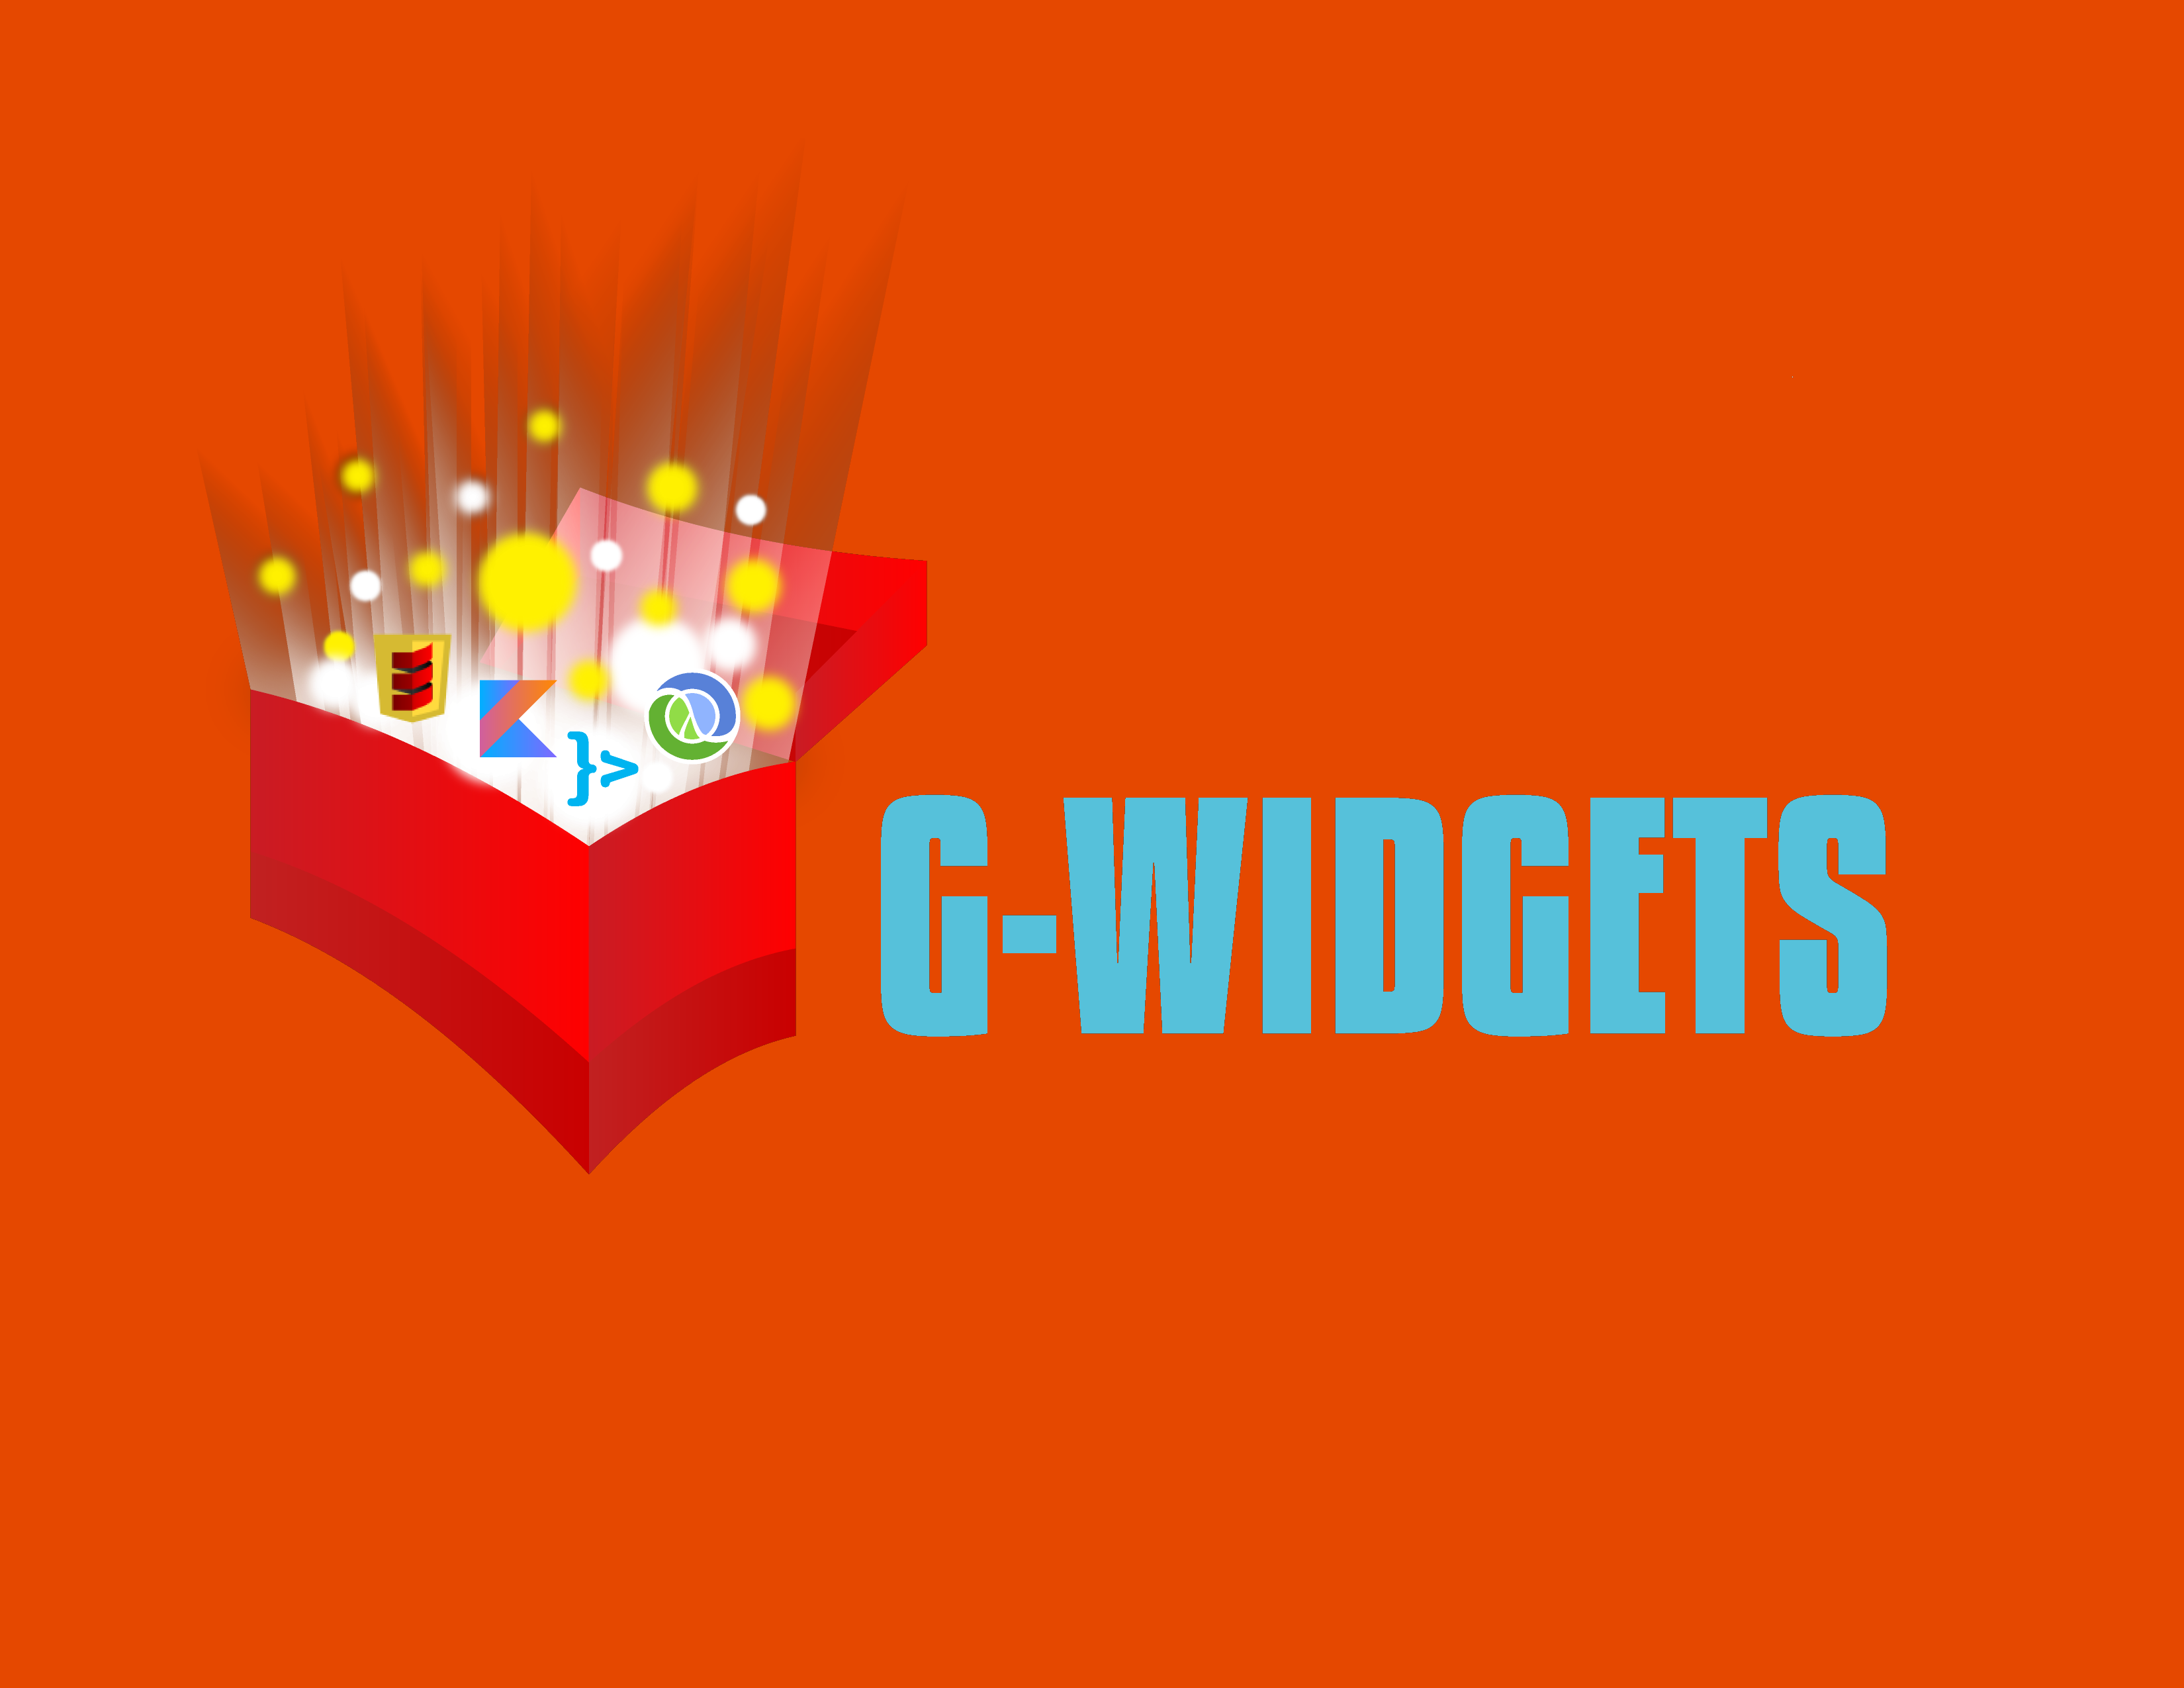 G-Widgets | Tutorials and discussions about JVM languages to